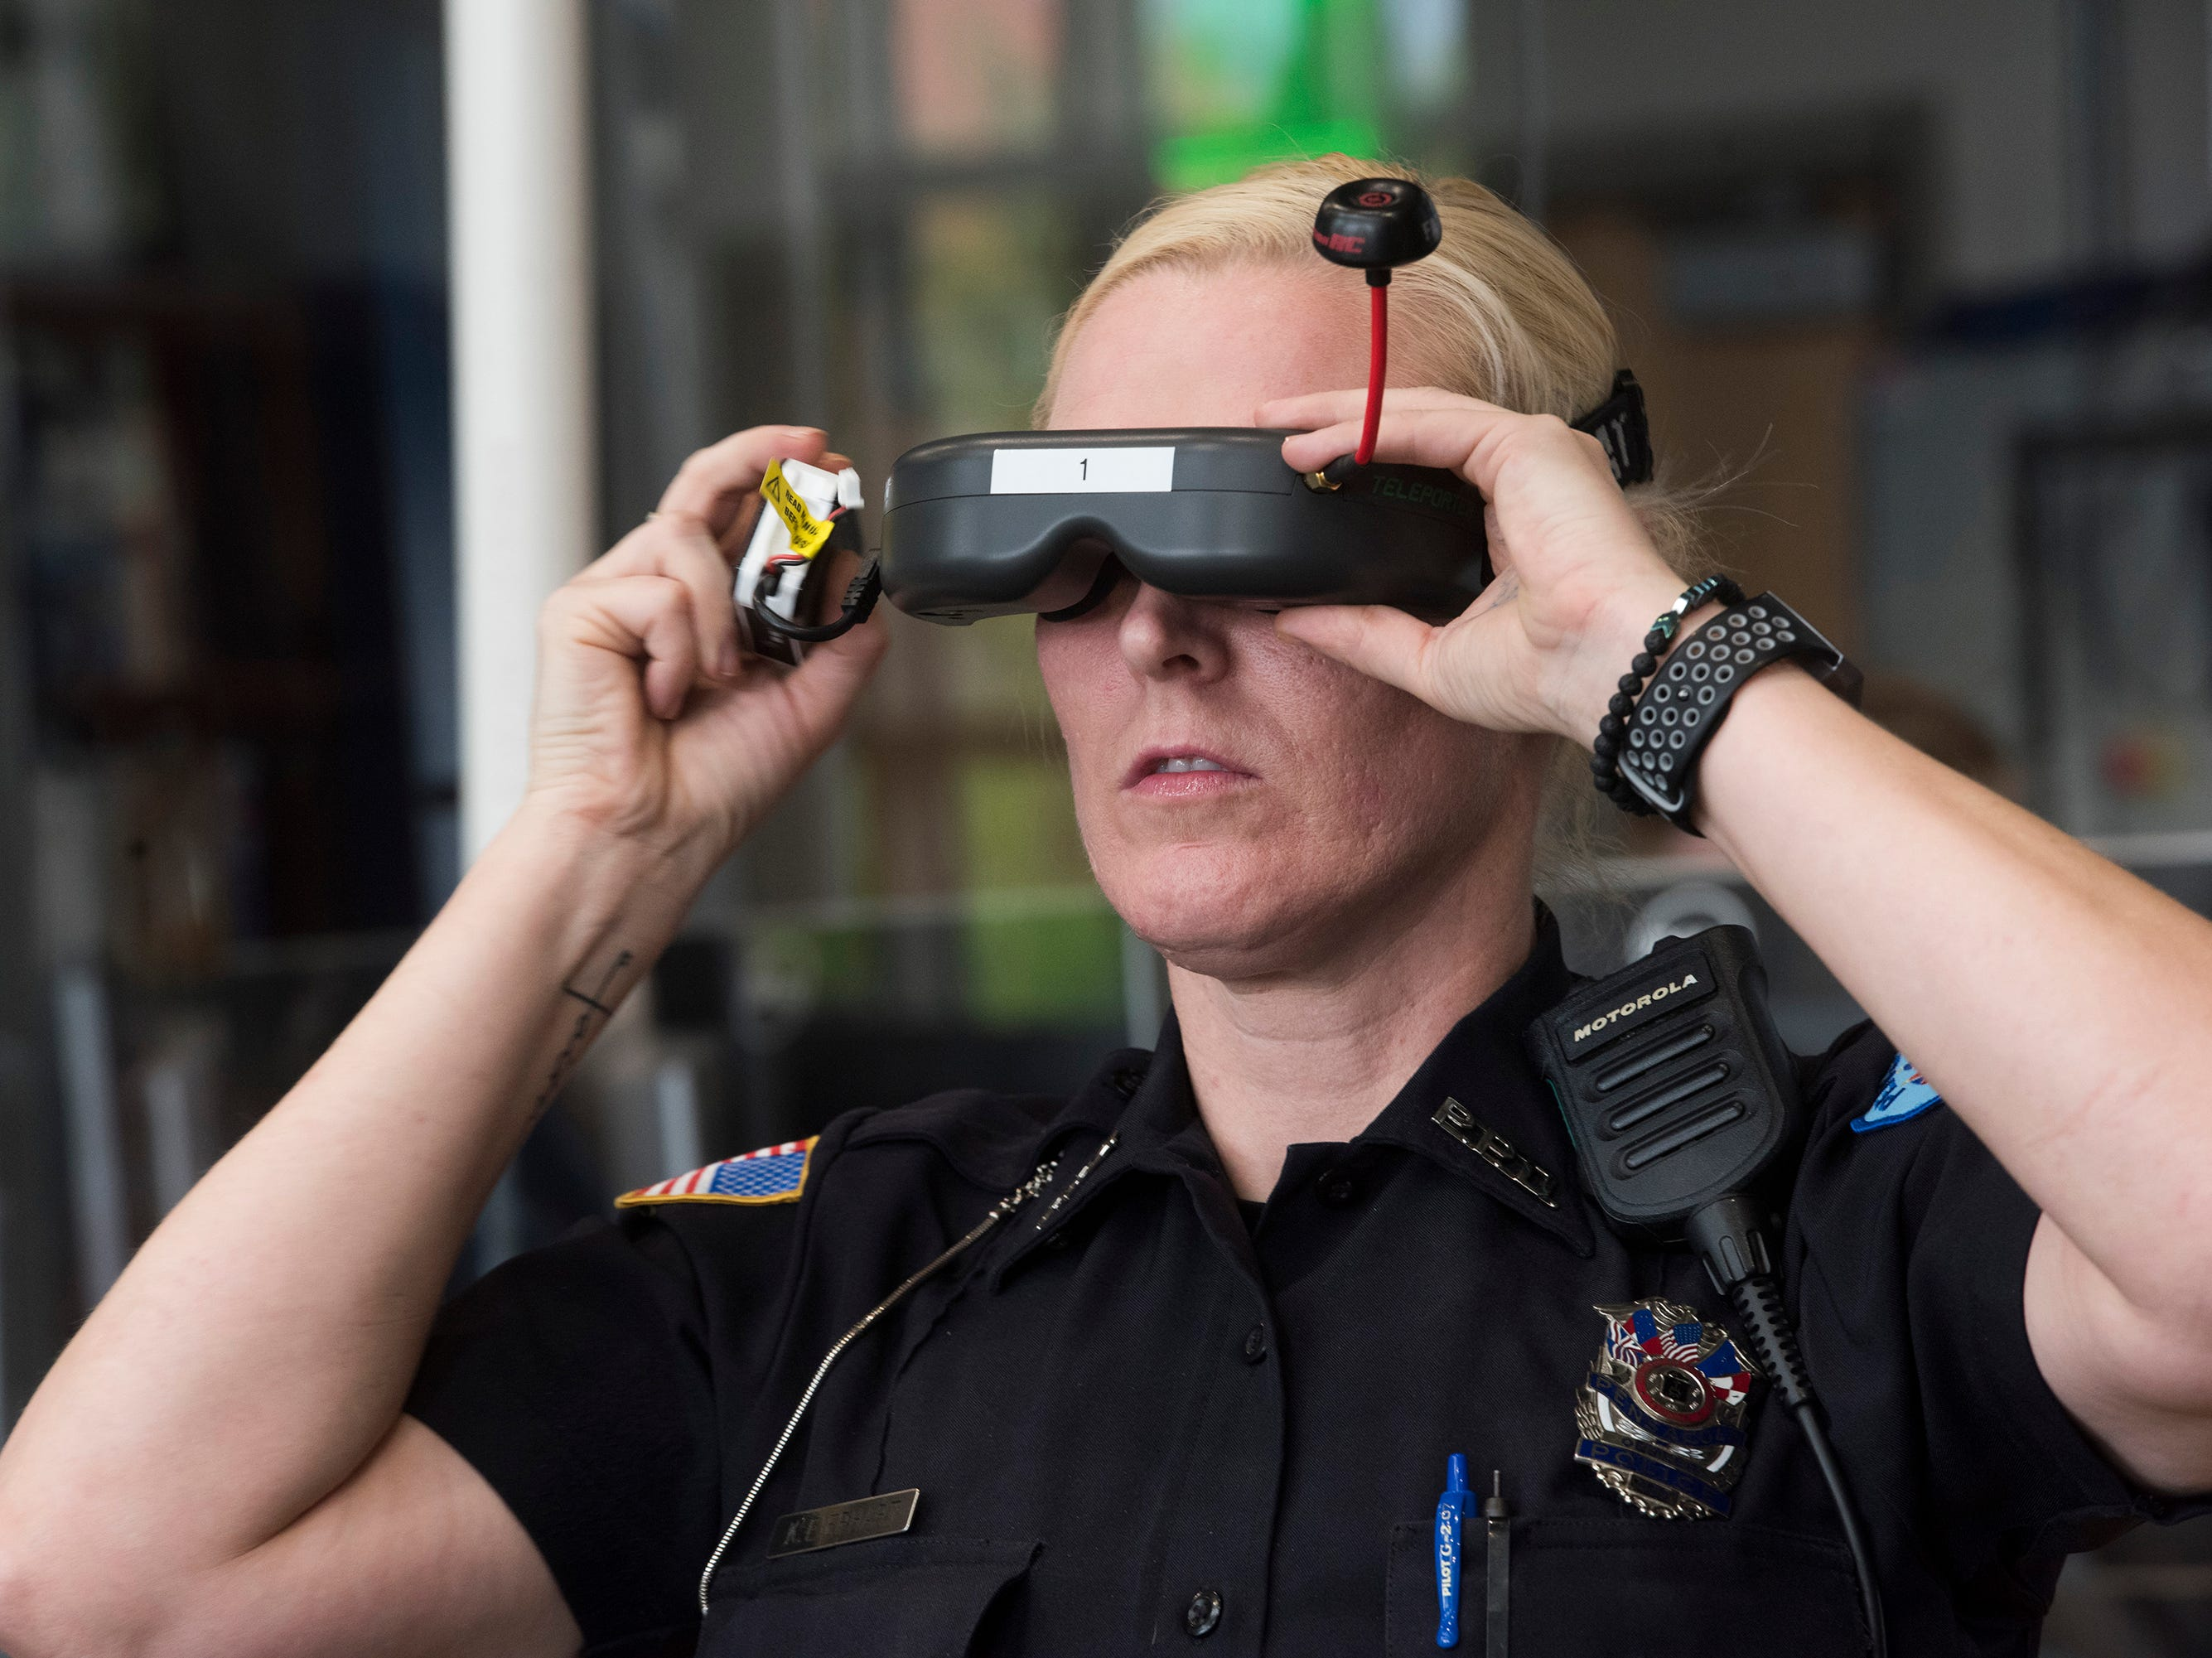 Pensacola Police Officer, Kelly Eierhart, marvels at seeing a real-time flight demonstration from a drone at the Institute of Human and Machine Cognition on Thursday, Aug. 16, 2018.